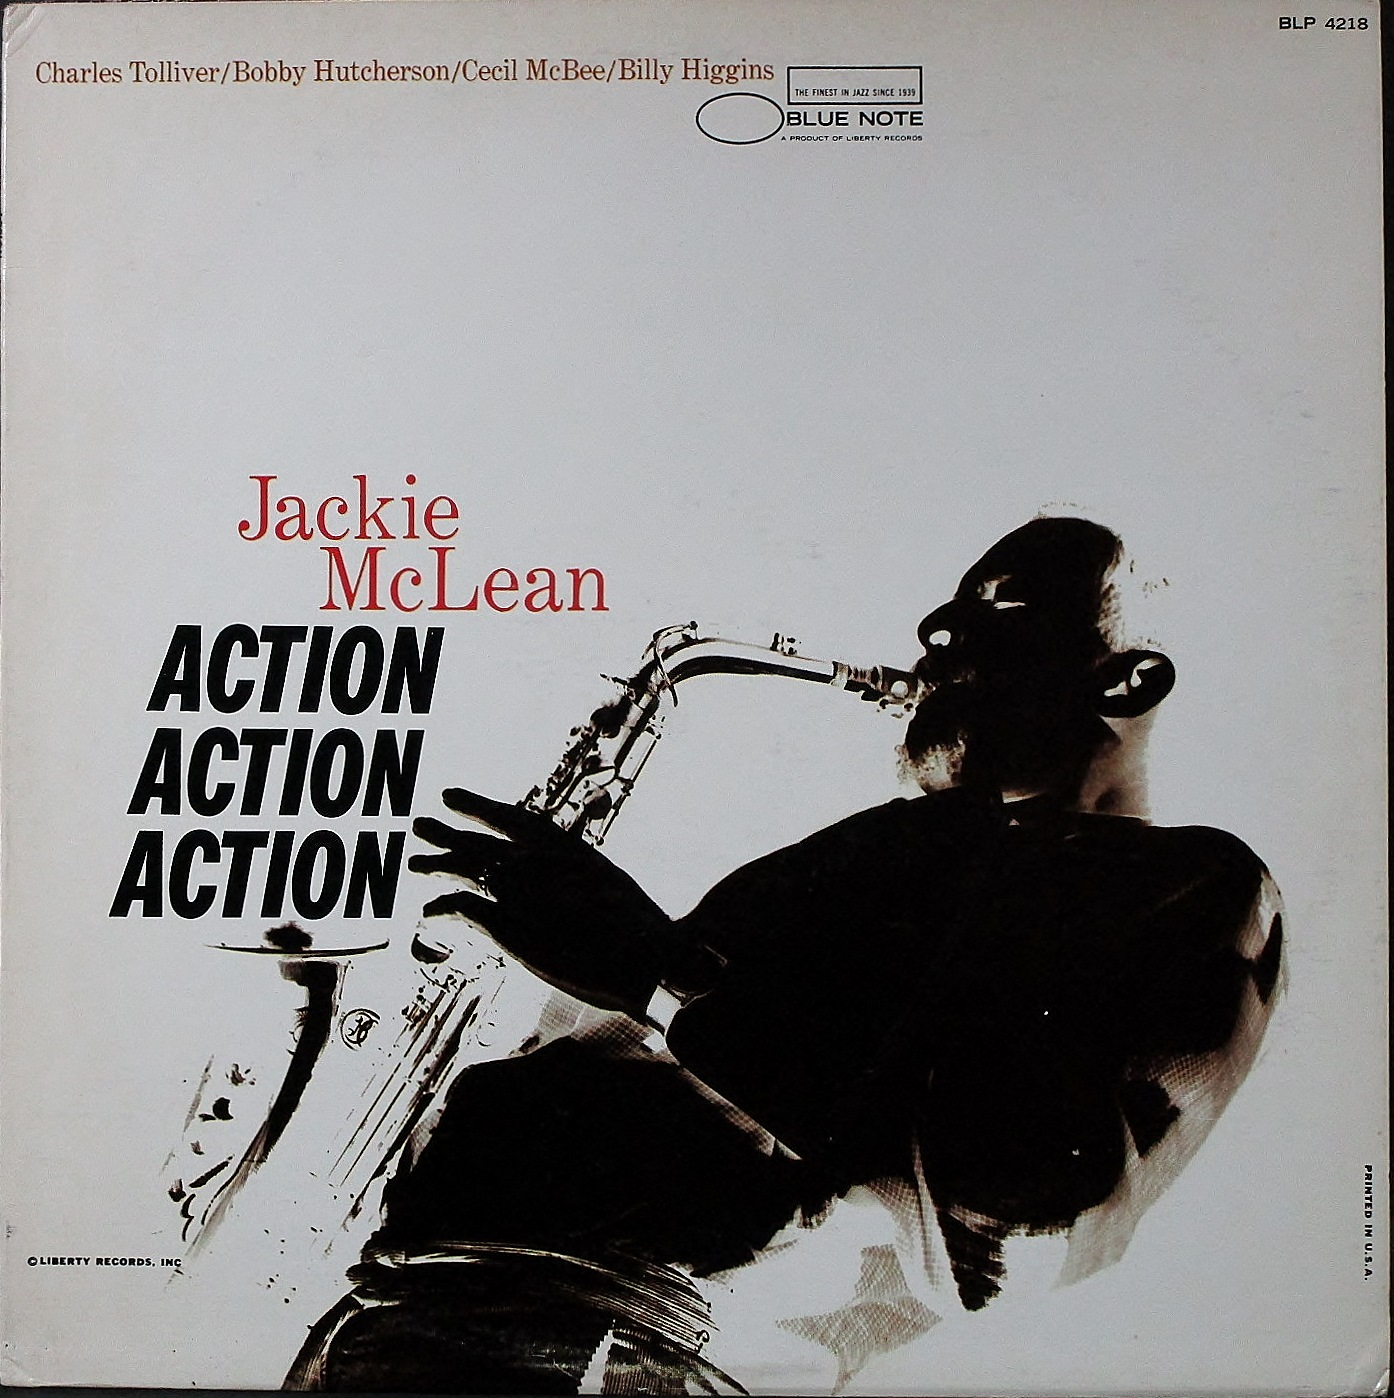 Jackie McLean ジャッキー・マクリーン / Action アクション